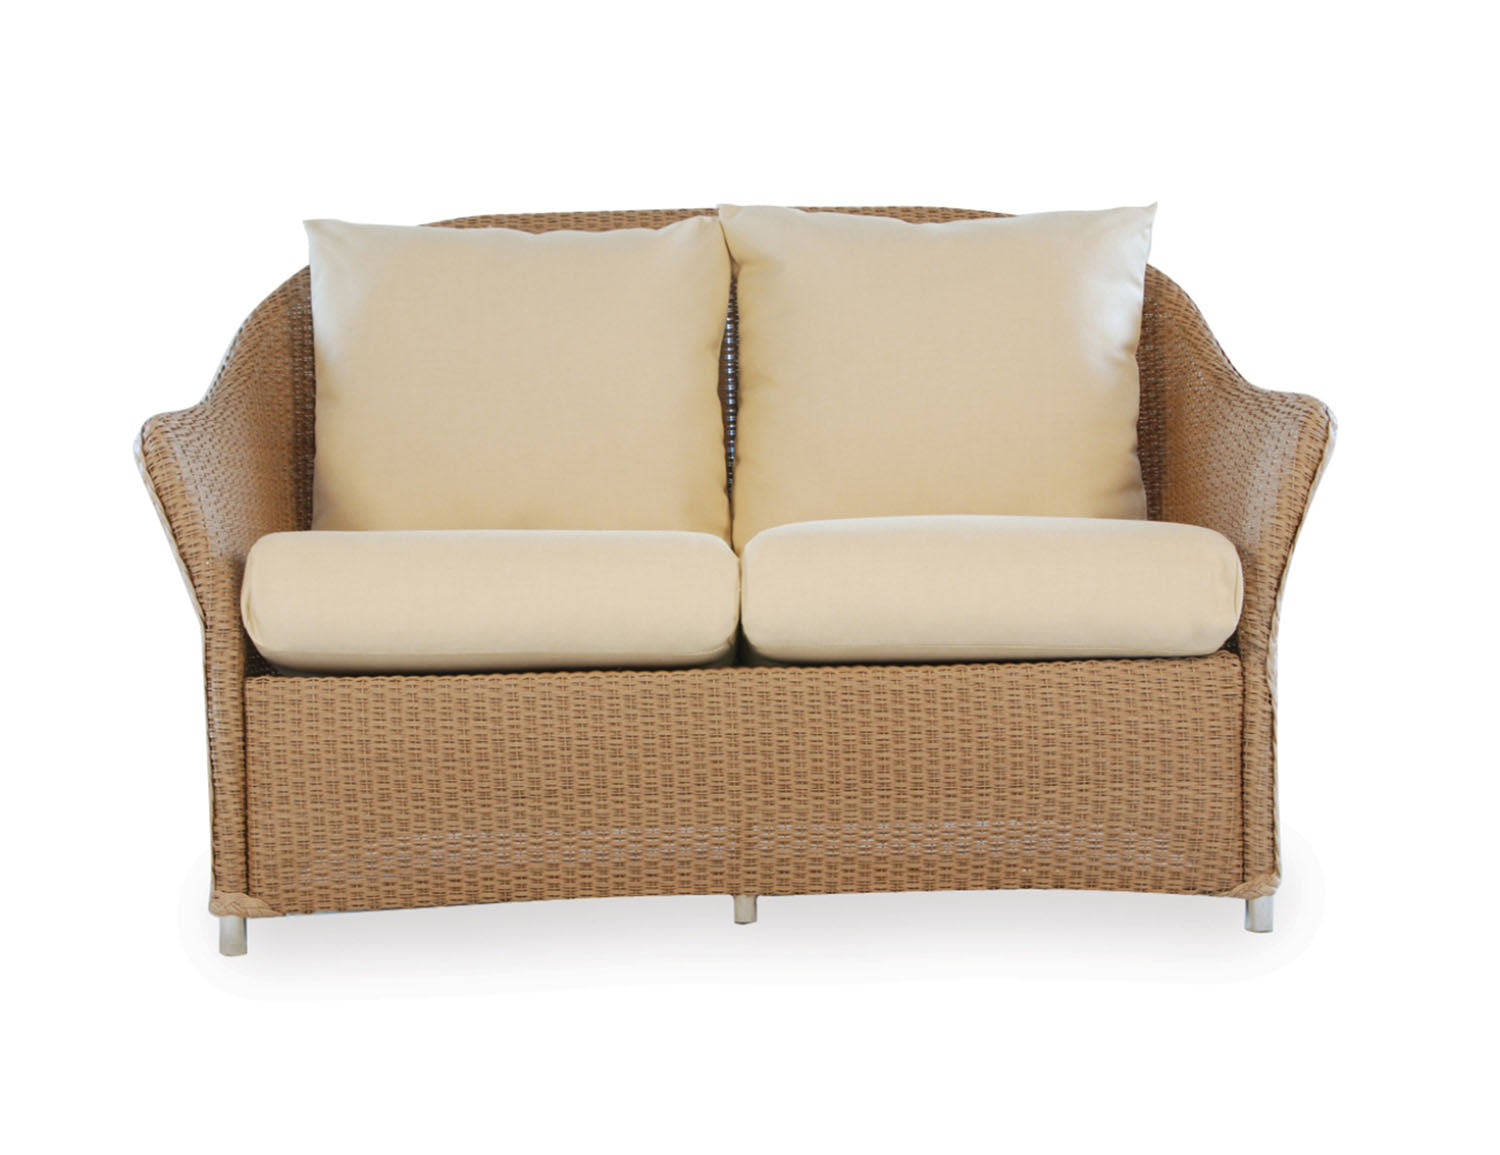 Lloyd Flanders Lloyd Flanders Weekend Retreat Loveseat Love Seat - Rattan Imports